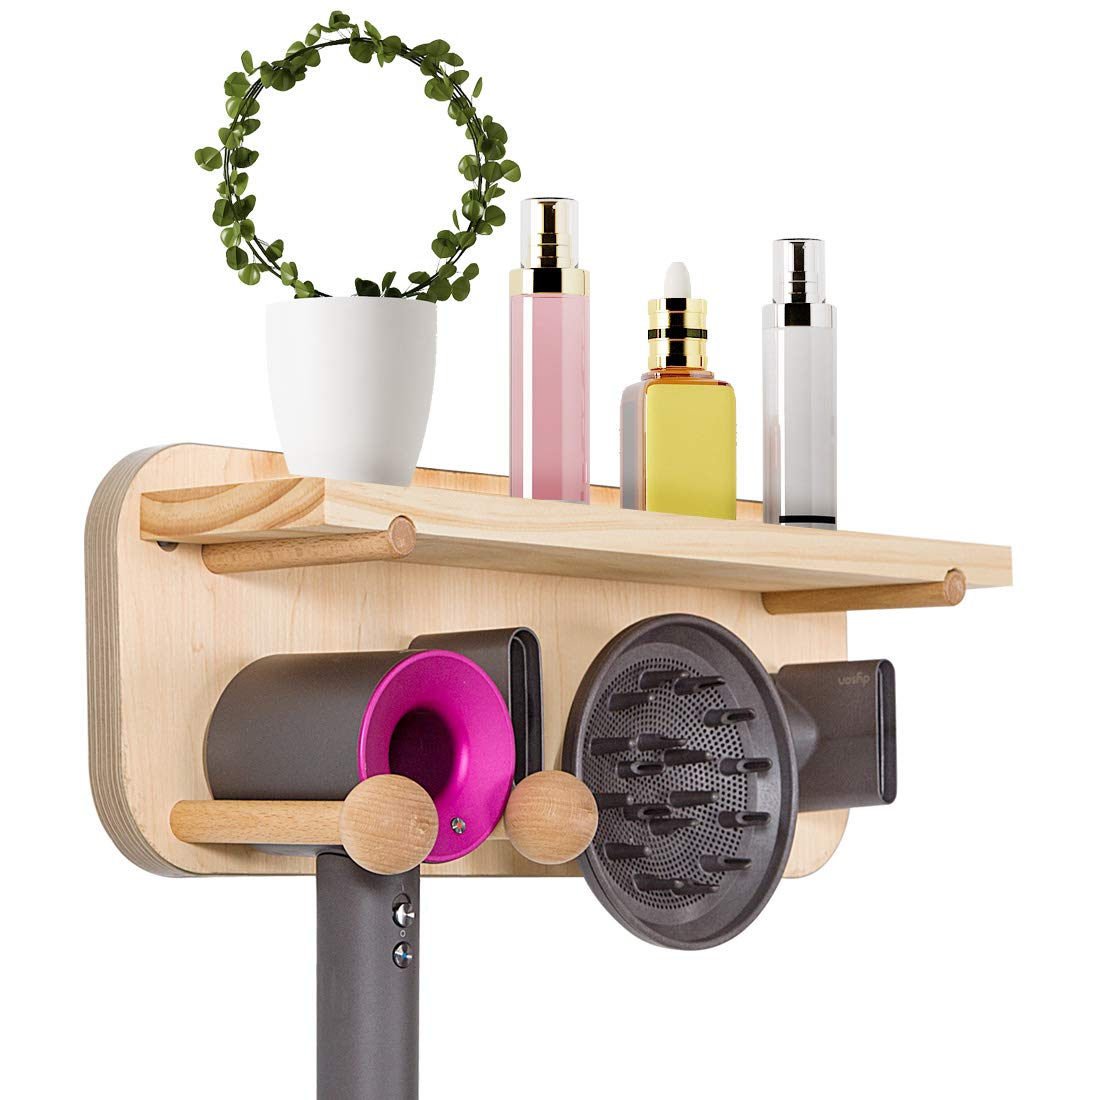 Voglee Dyson Hairdryer Holder with Storage Function, Wooden Hair Dryer Organizer Wall Mounted for Dyson Supersonic Hair Dryer, Diffuser and Two Nozzles by Voglee